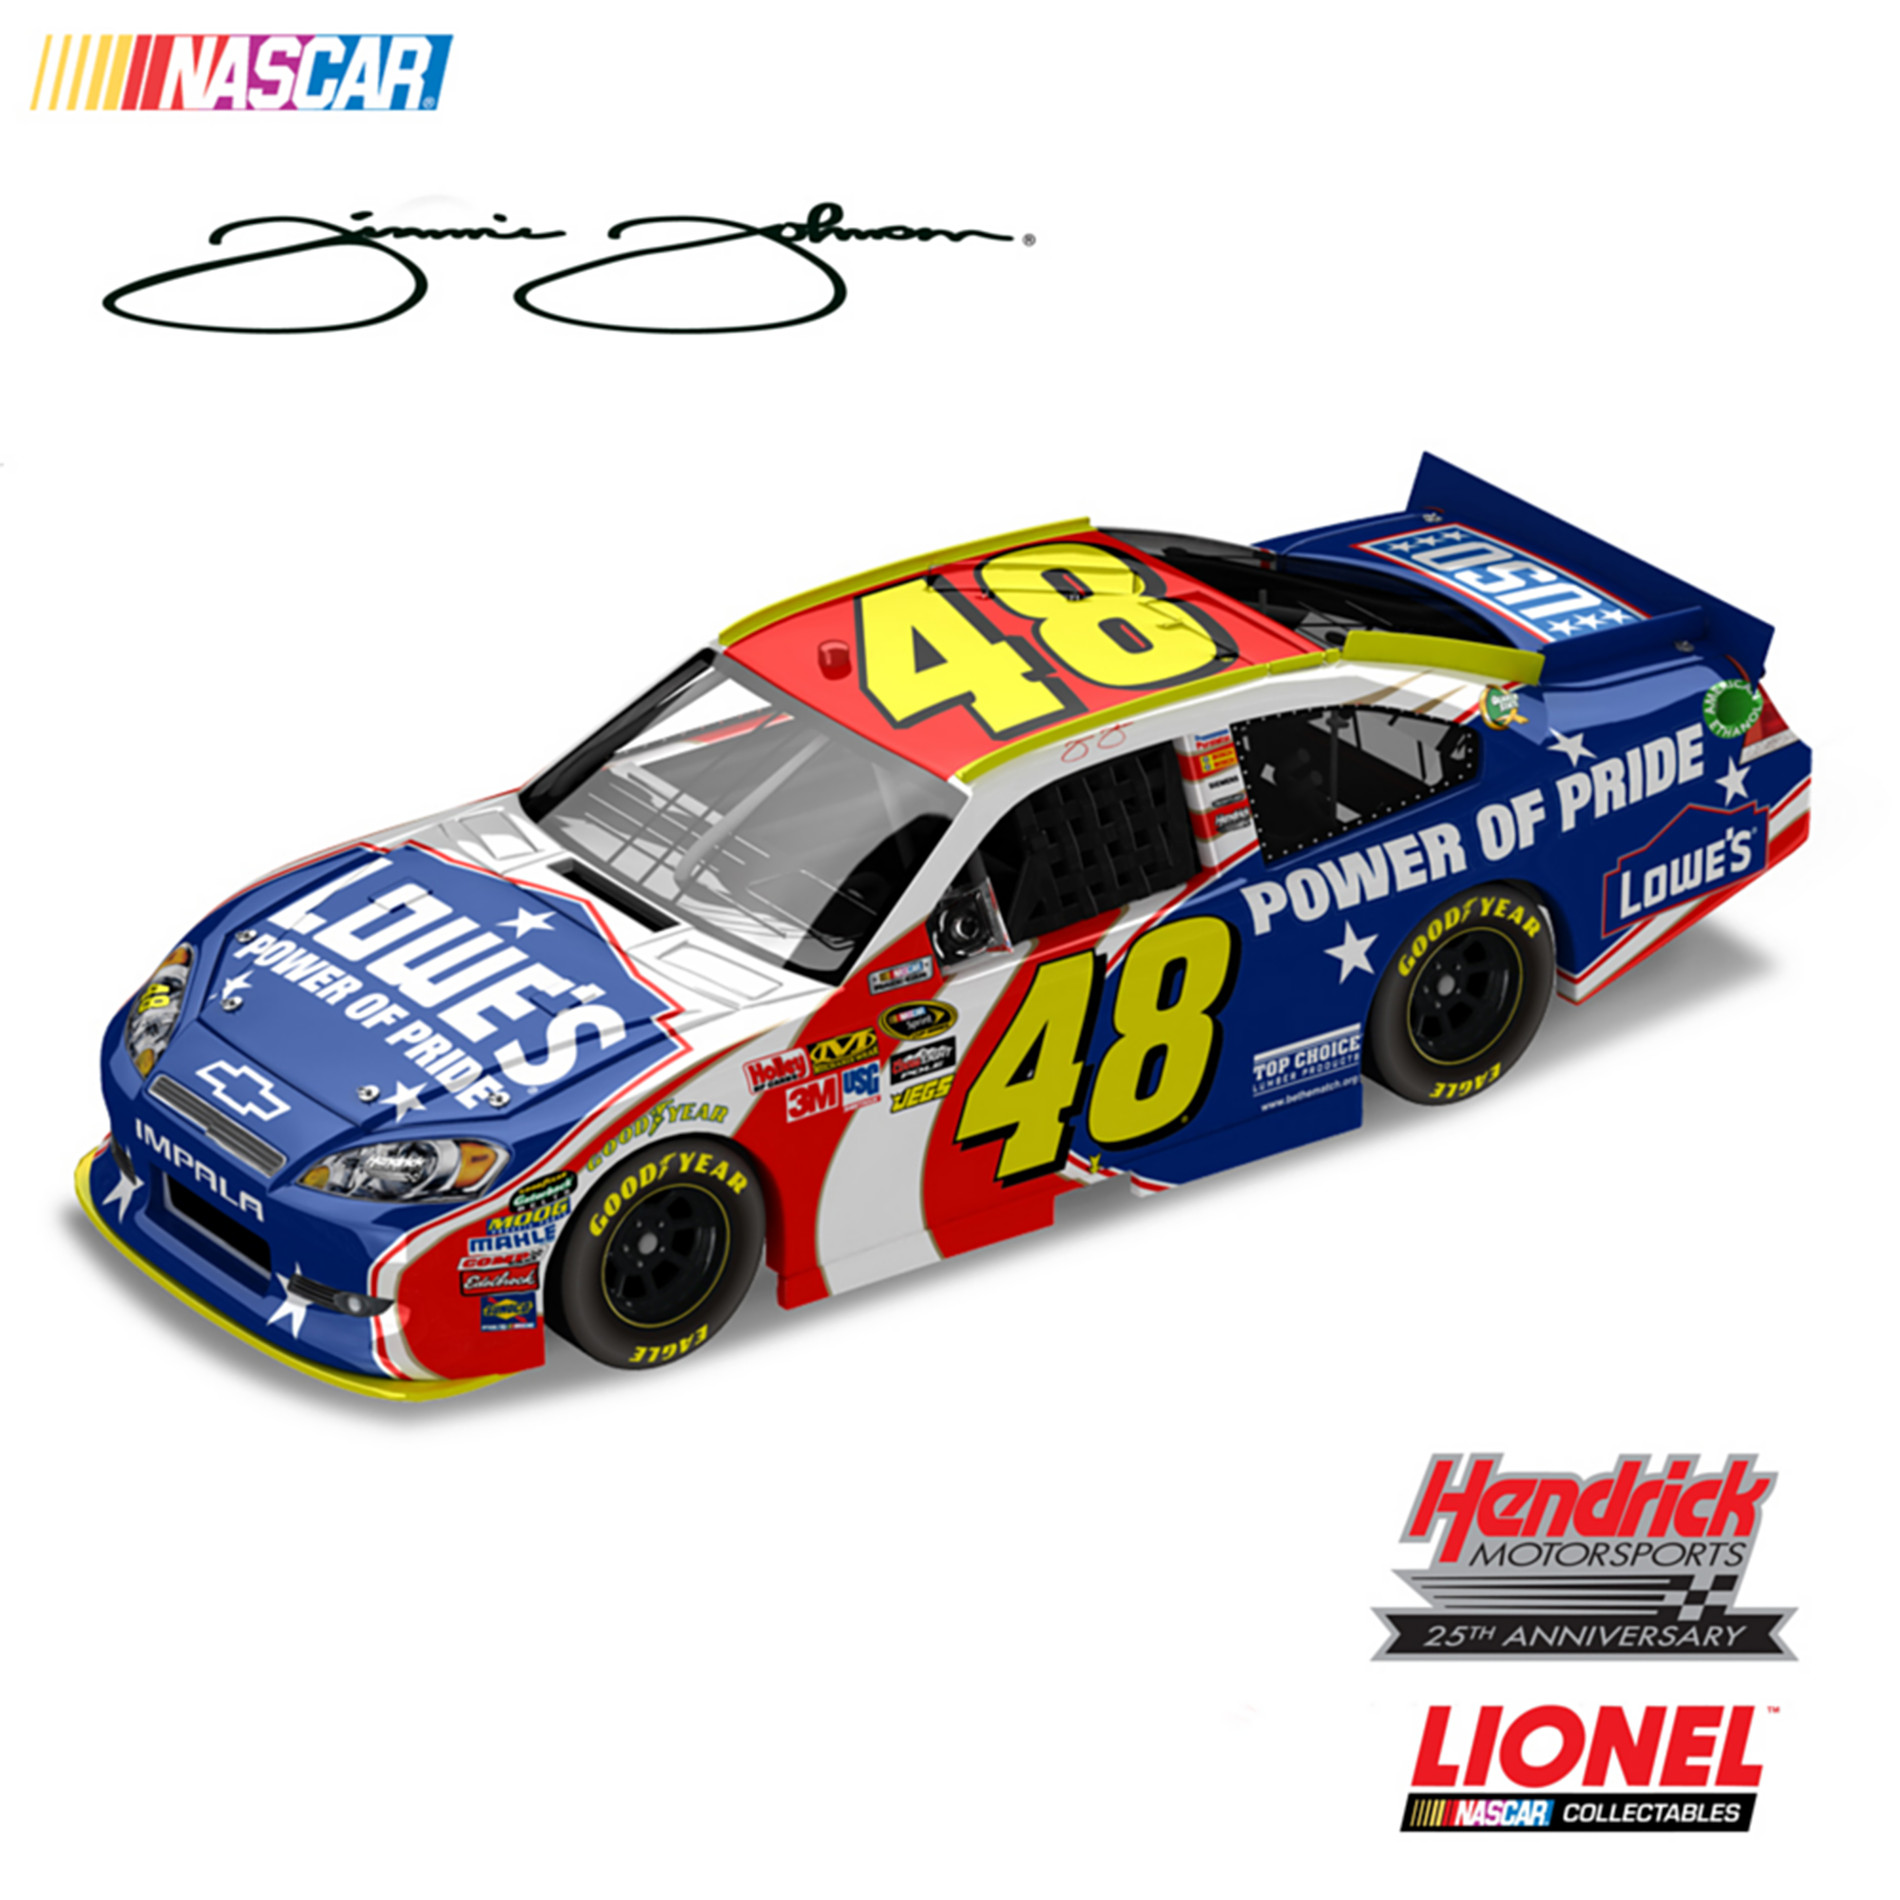 The Hamilton Collection 1:24-Scale Jimmie Johnson No. 48 Lowe's Power Of Pride 2011 Chevrolet Impala Diecast Car at Sears.com